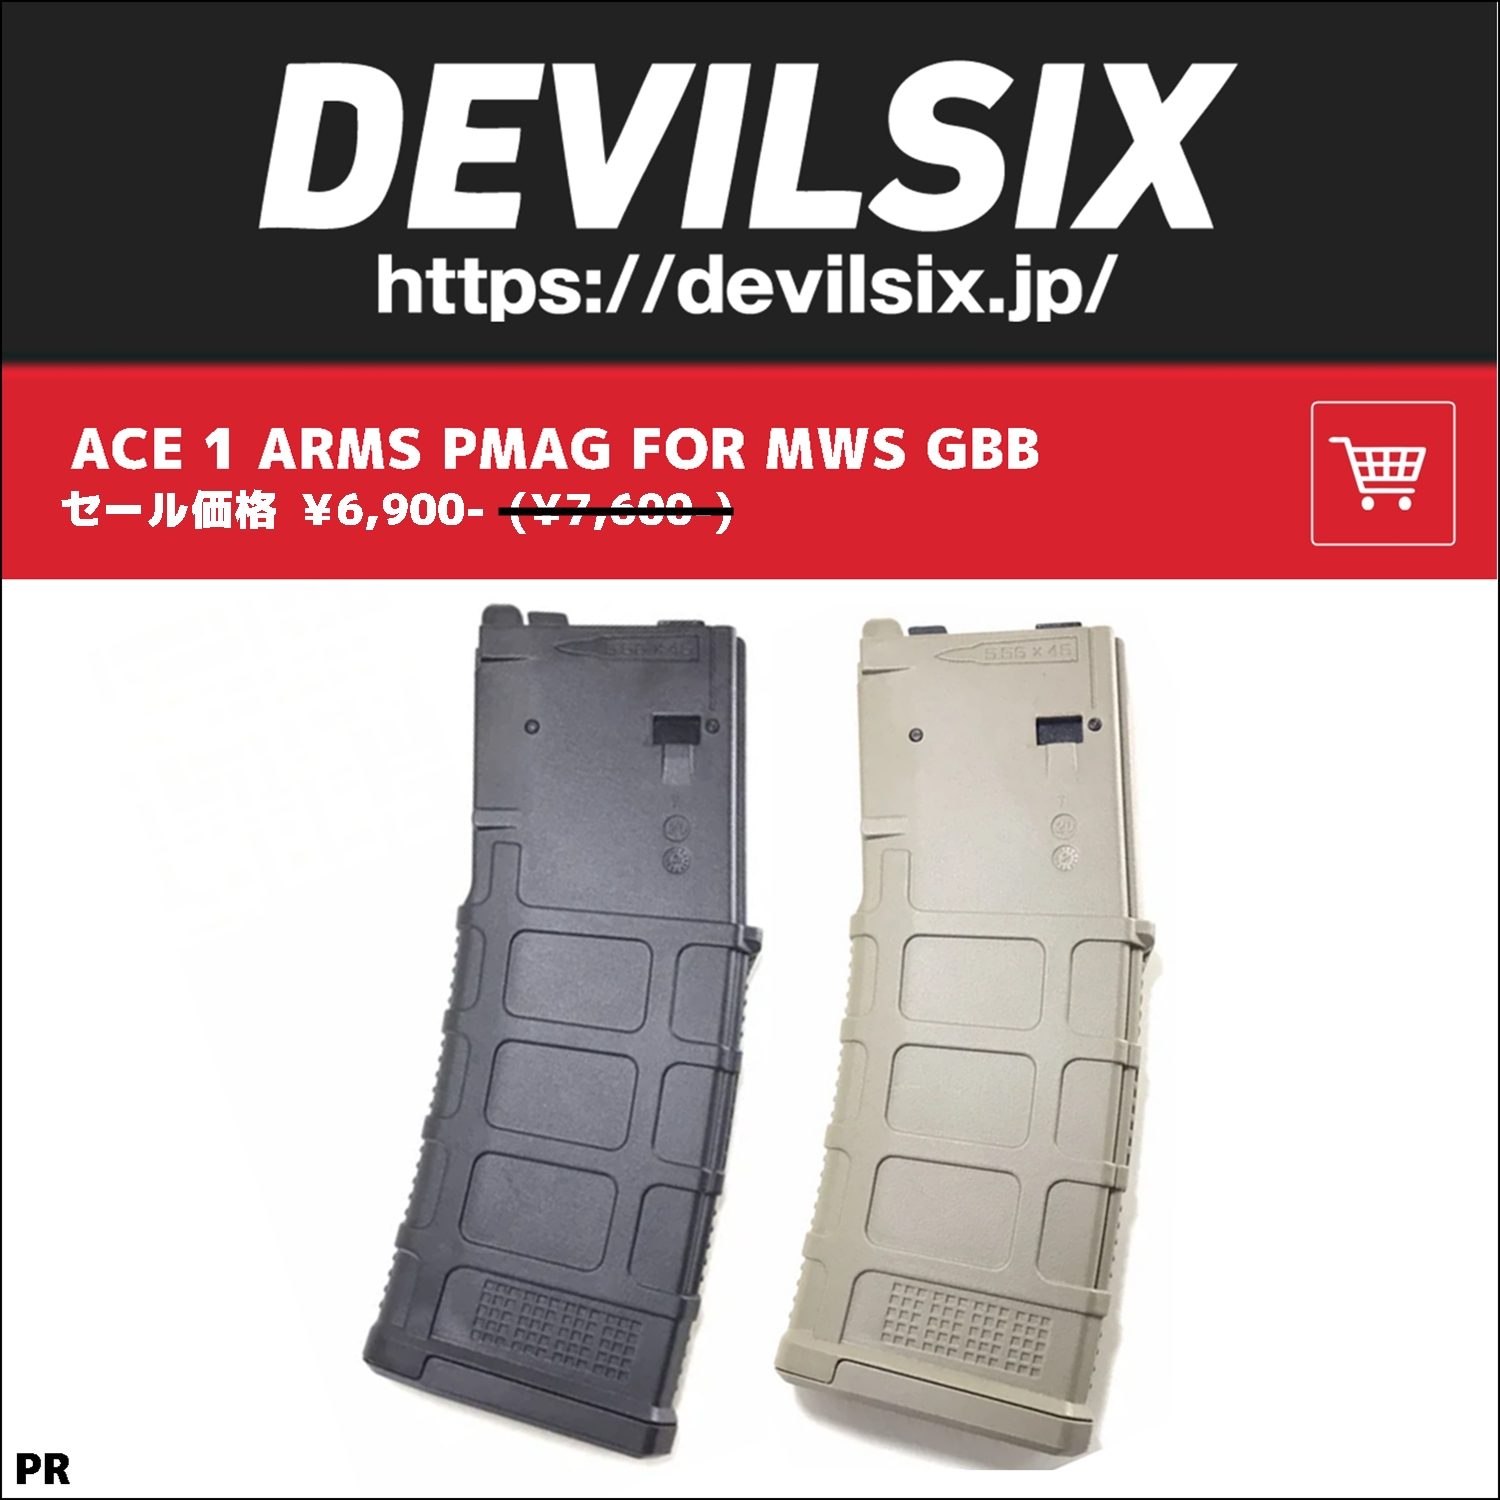 ACE 1 ARMS PMAG FOR MWS GBB DEVILSIX!!